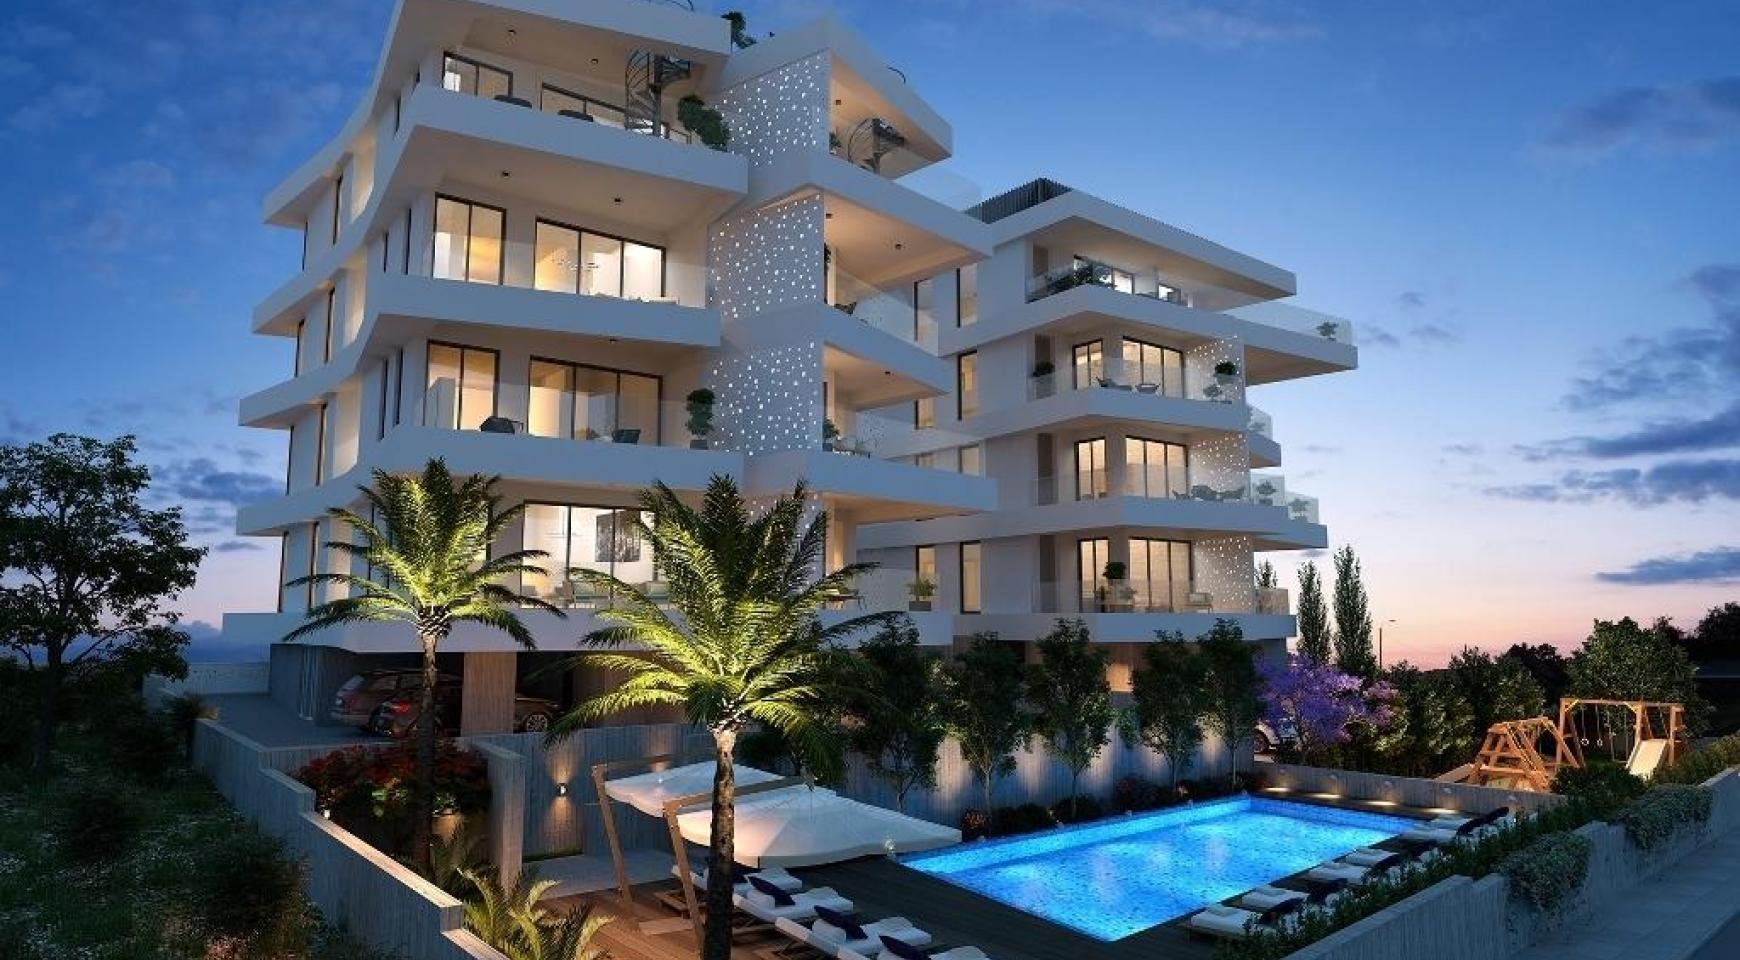 New 2 Bedroom Apartment in a Contemporary Building in Germasogeia Area - 1